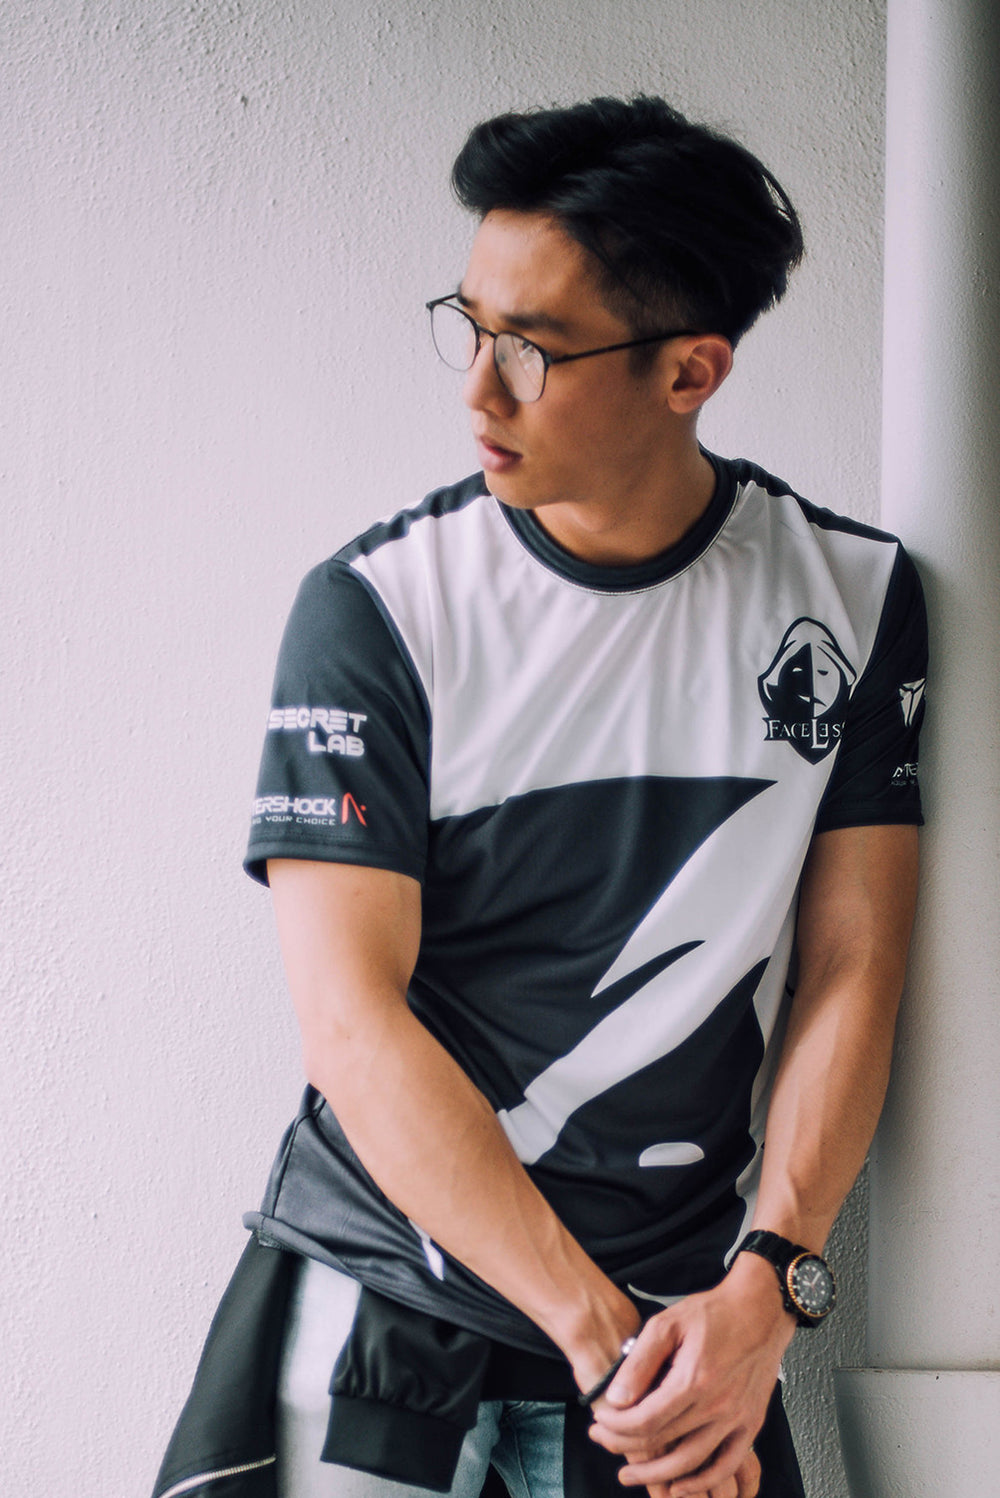 Official Team Faceless Jersey